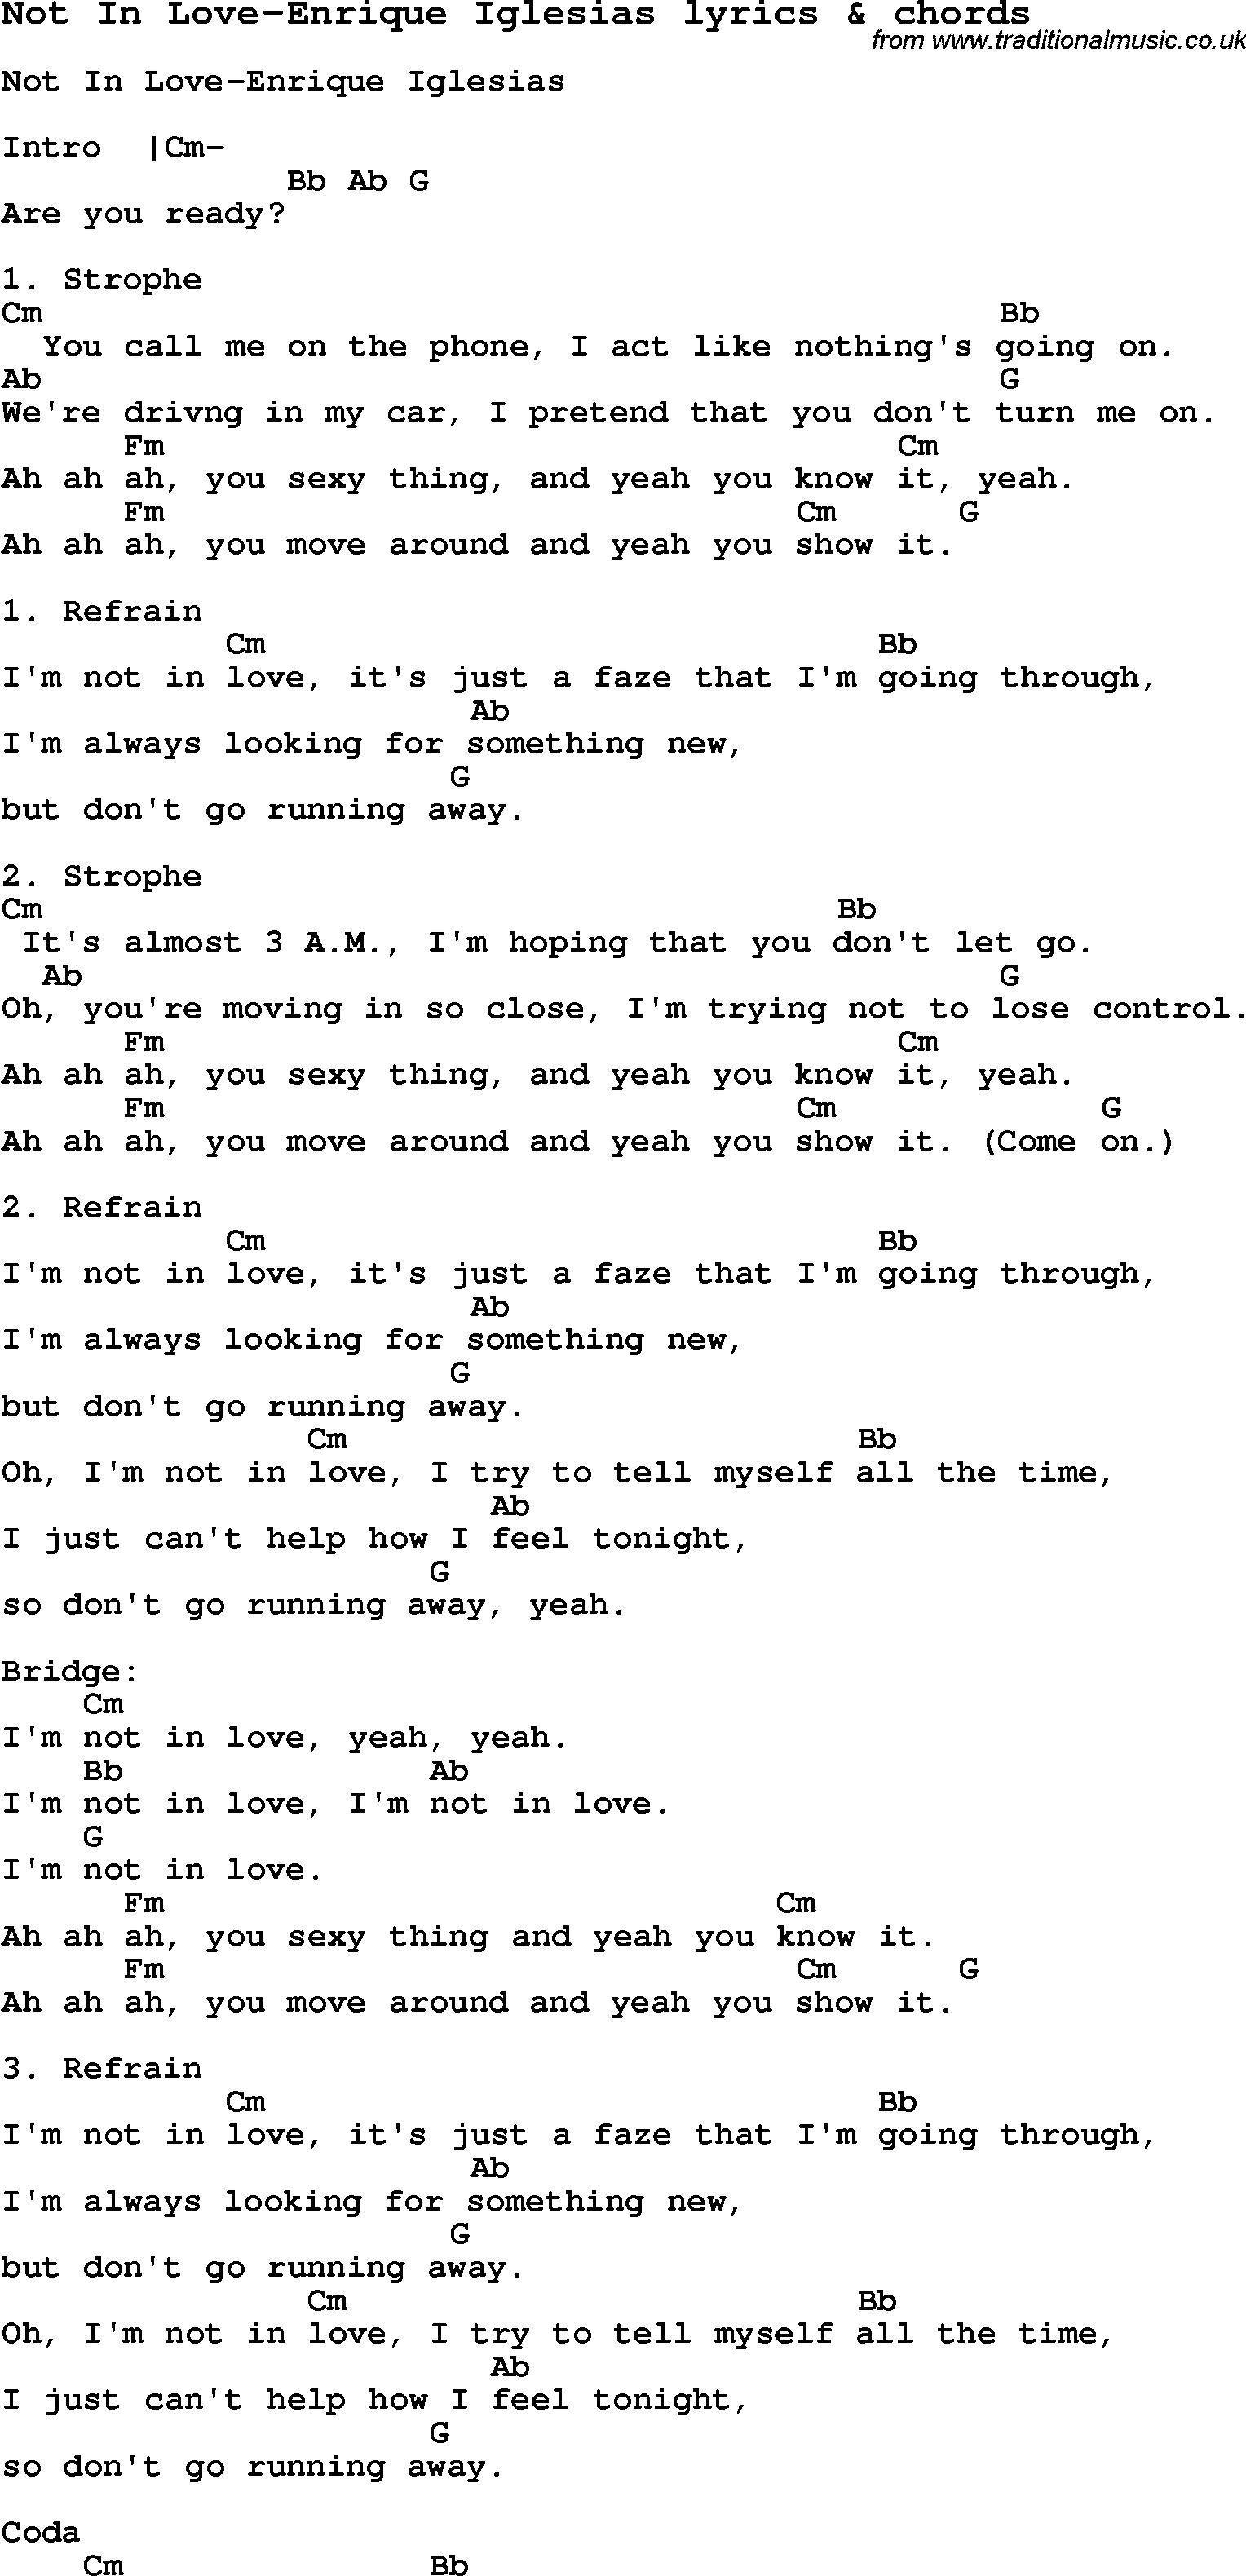 Love Song Lyrics Fornot In Love Enrique Iglesias With Chords